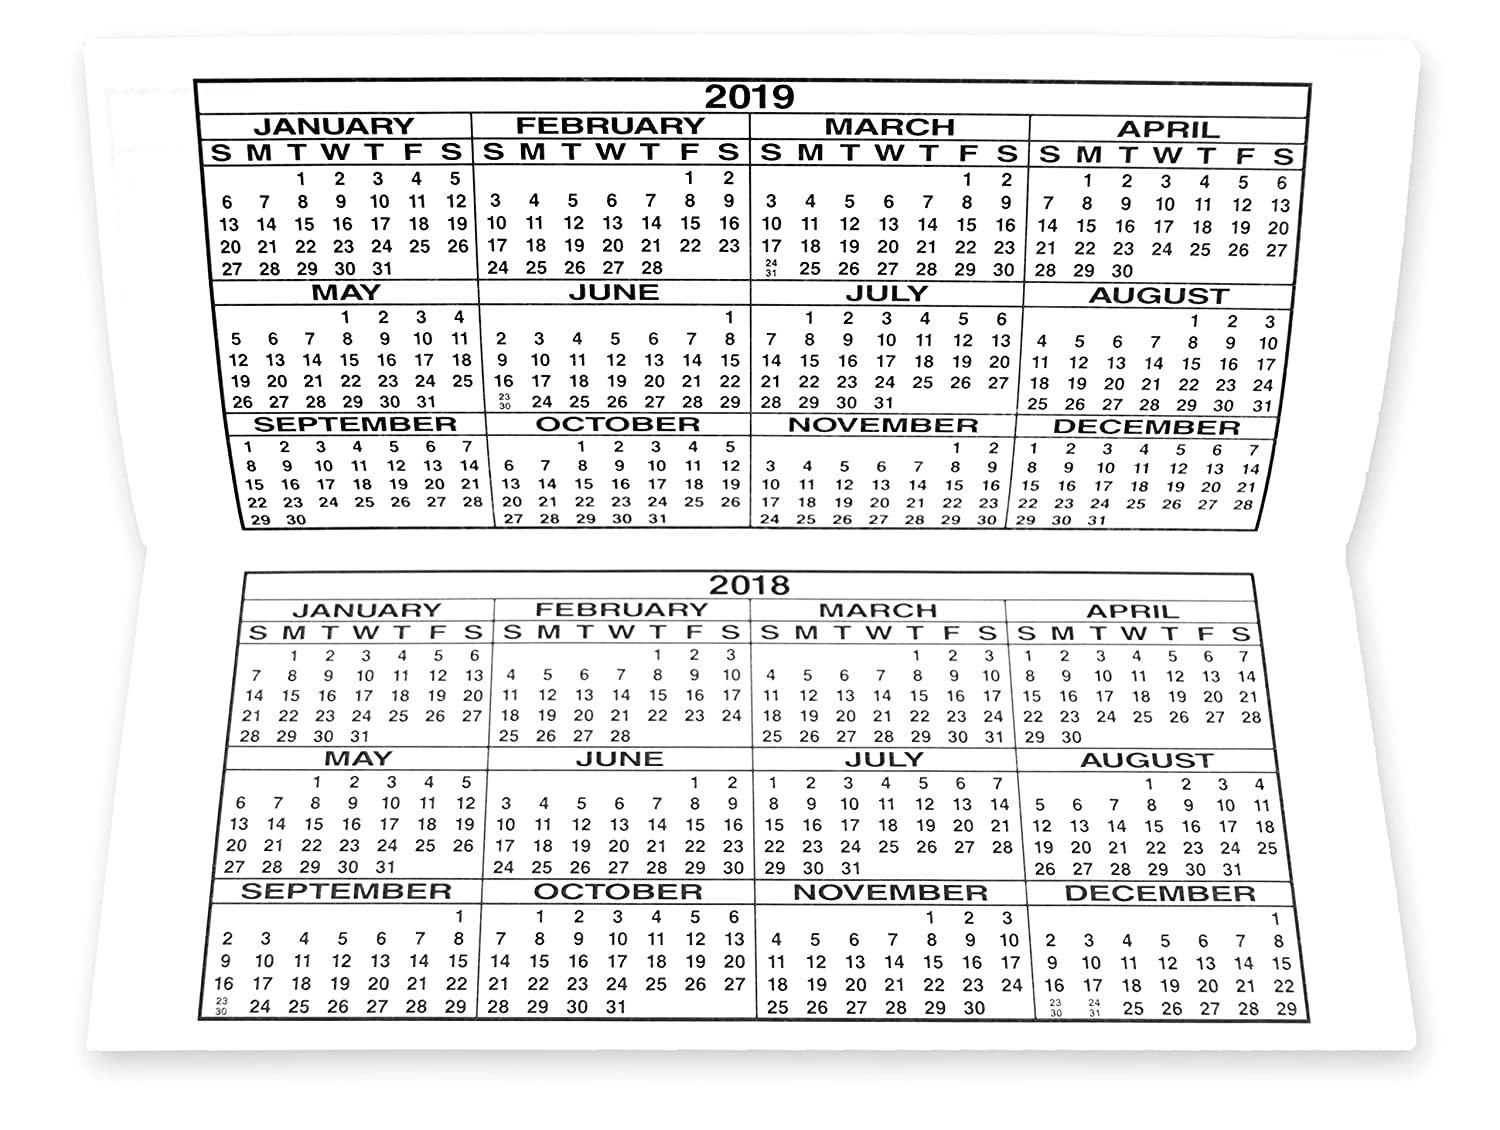 large print check register 2017 2018 2019 calendars 10 registers